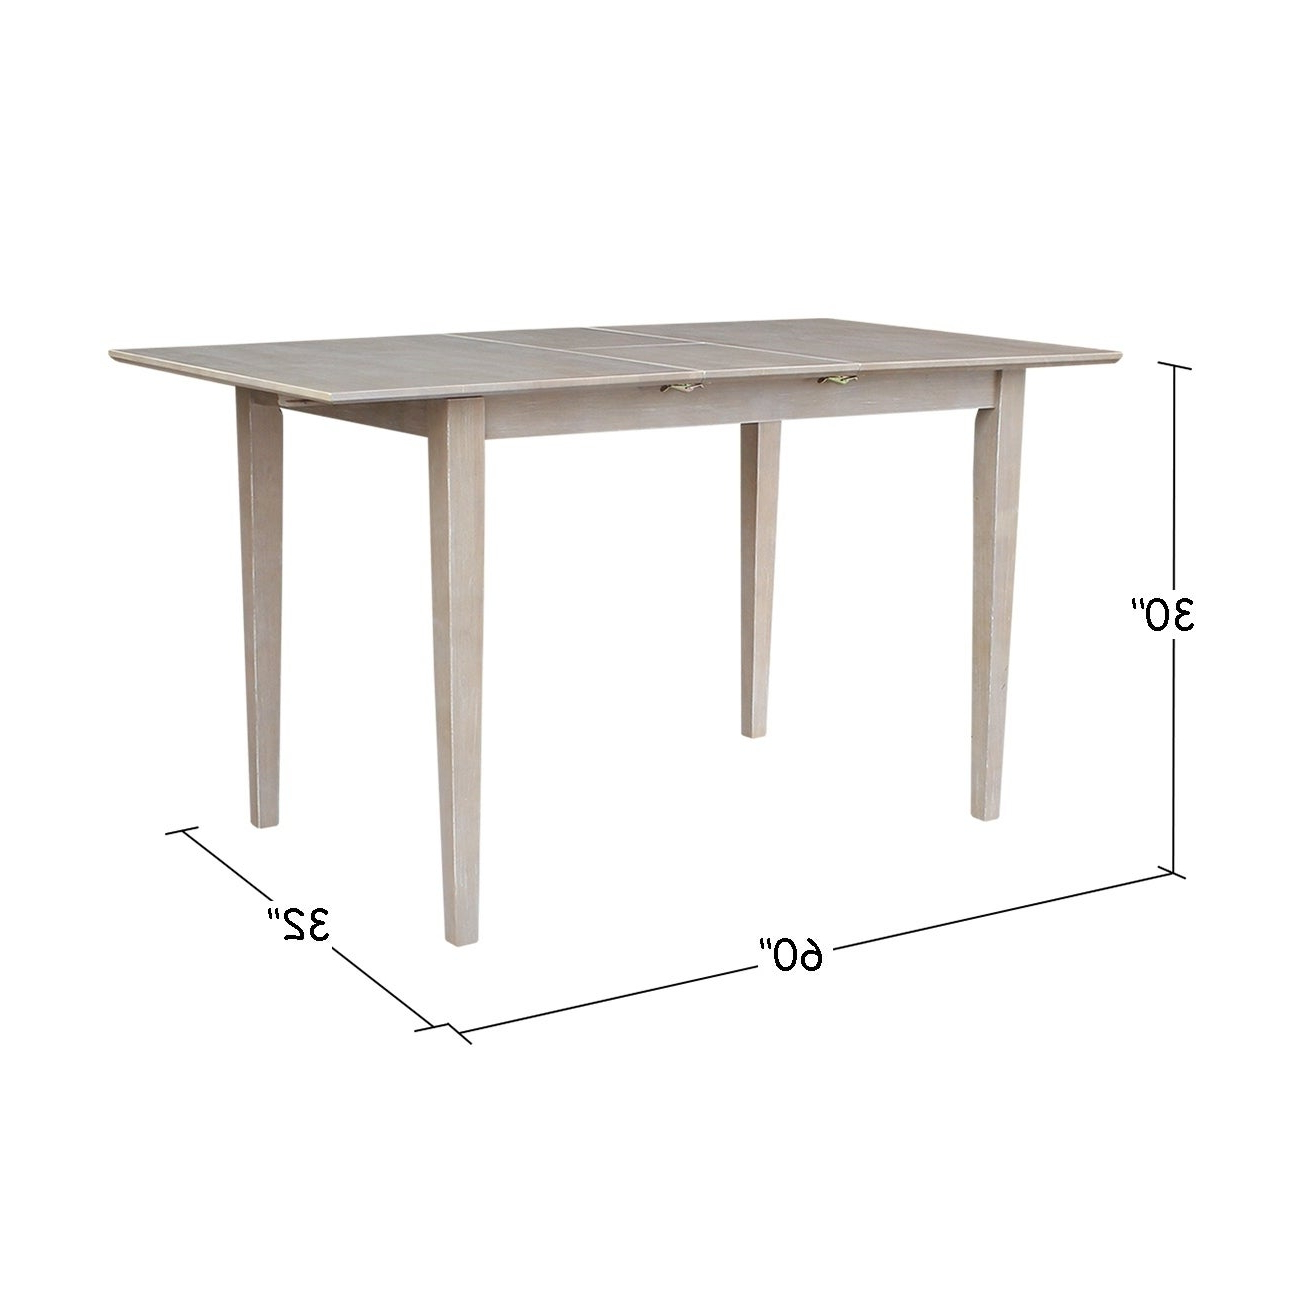 Fashionable Gray Wash Benchwright Extending Dining Tables In Table With Butterfly Extension – Washed Gray Taupe – Washed Gray Taupe (View 9 of 25)